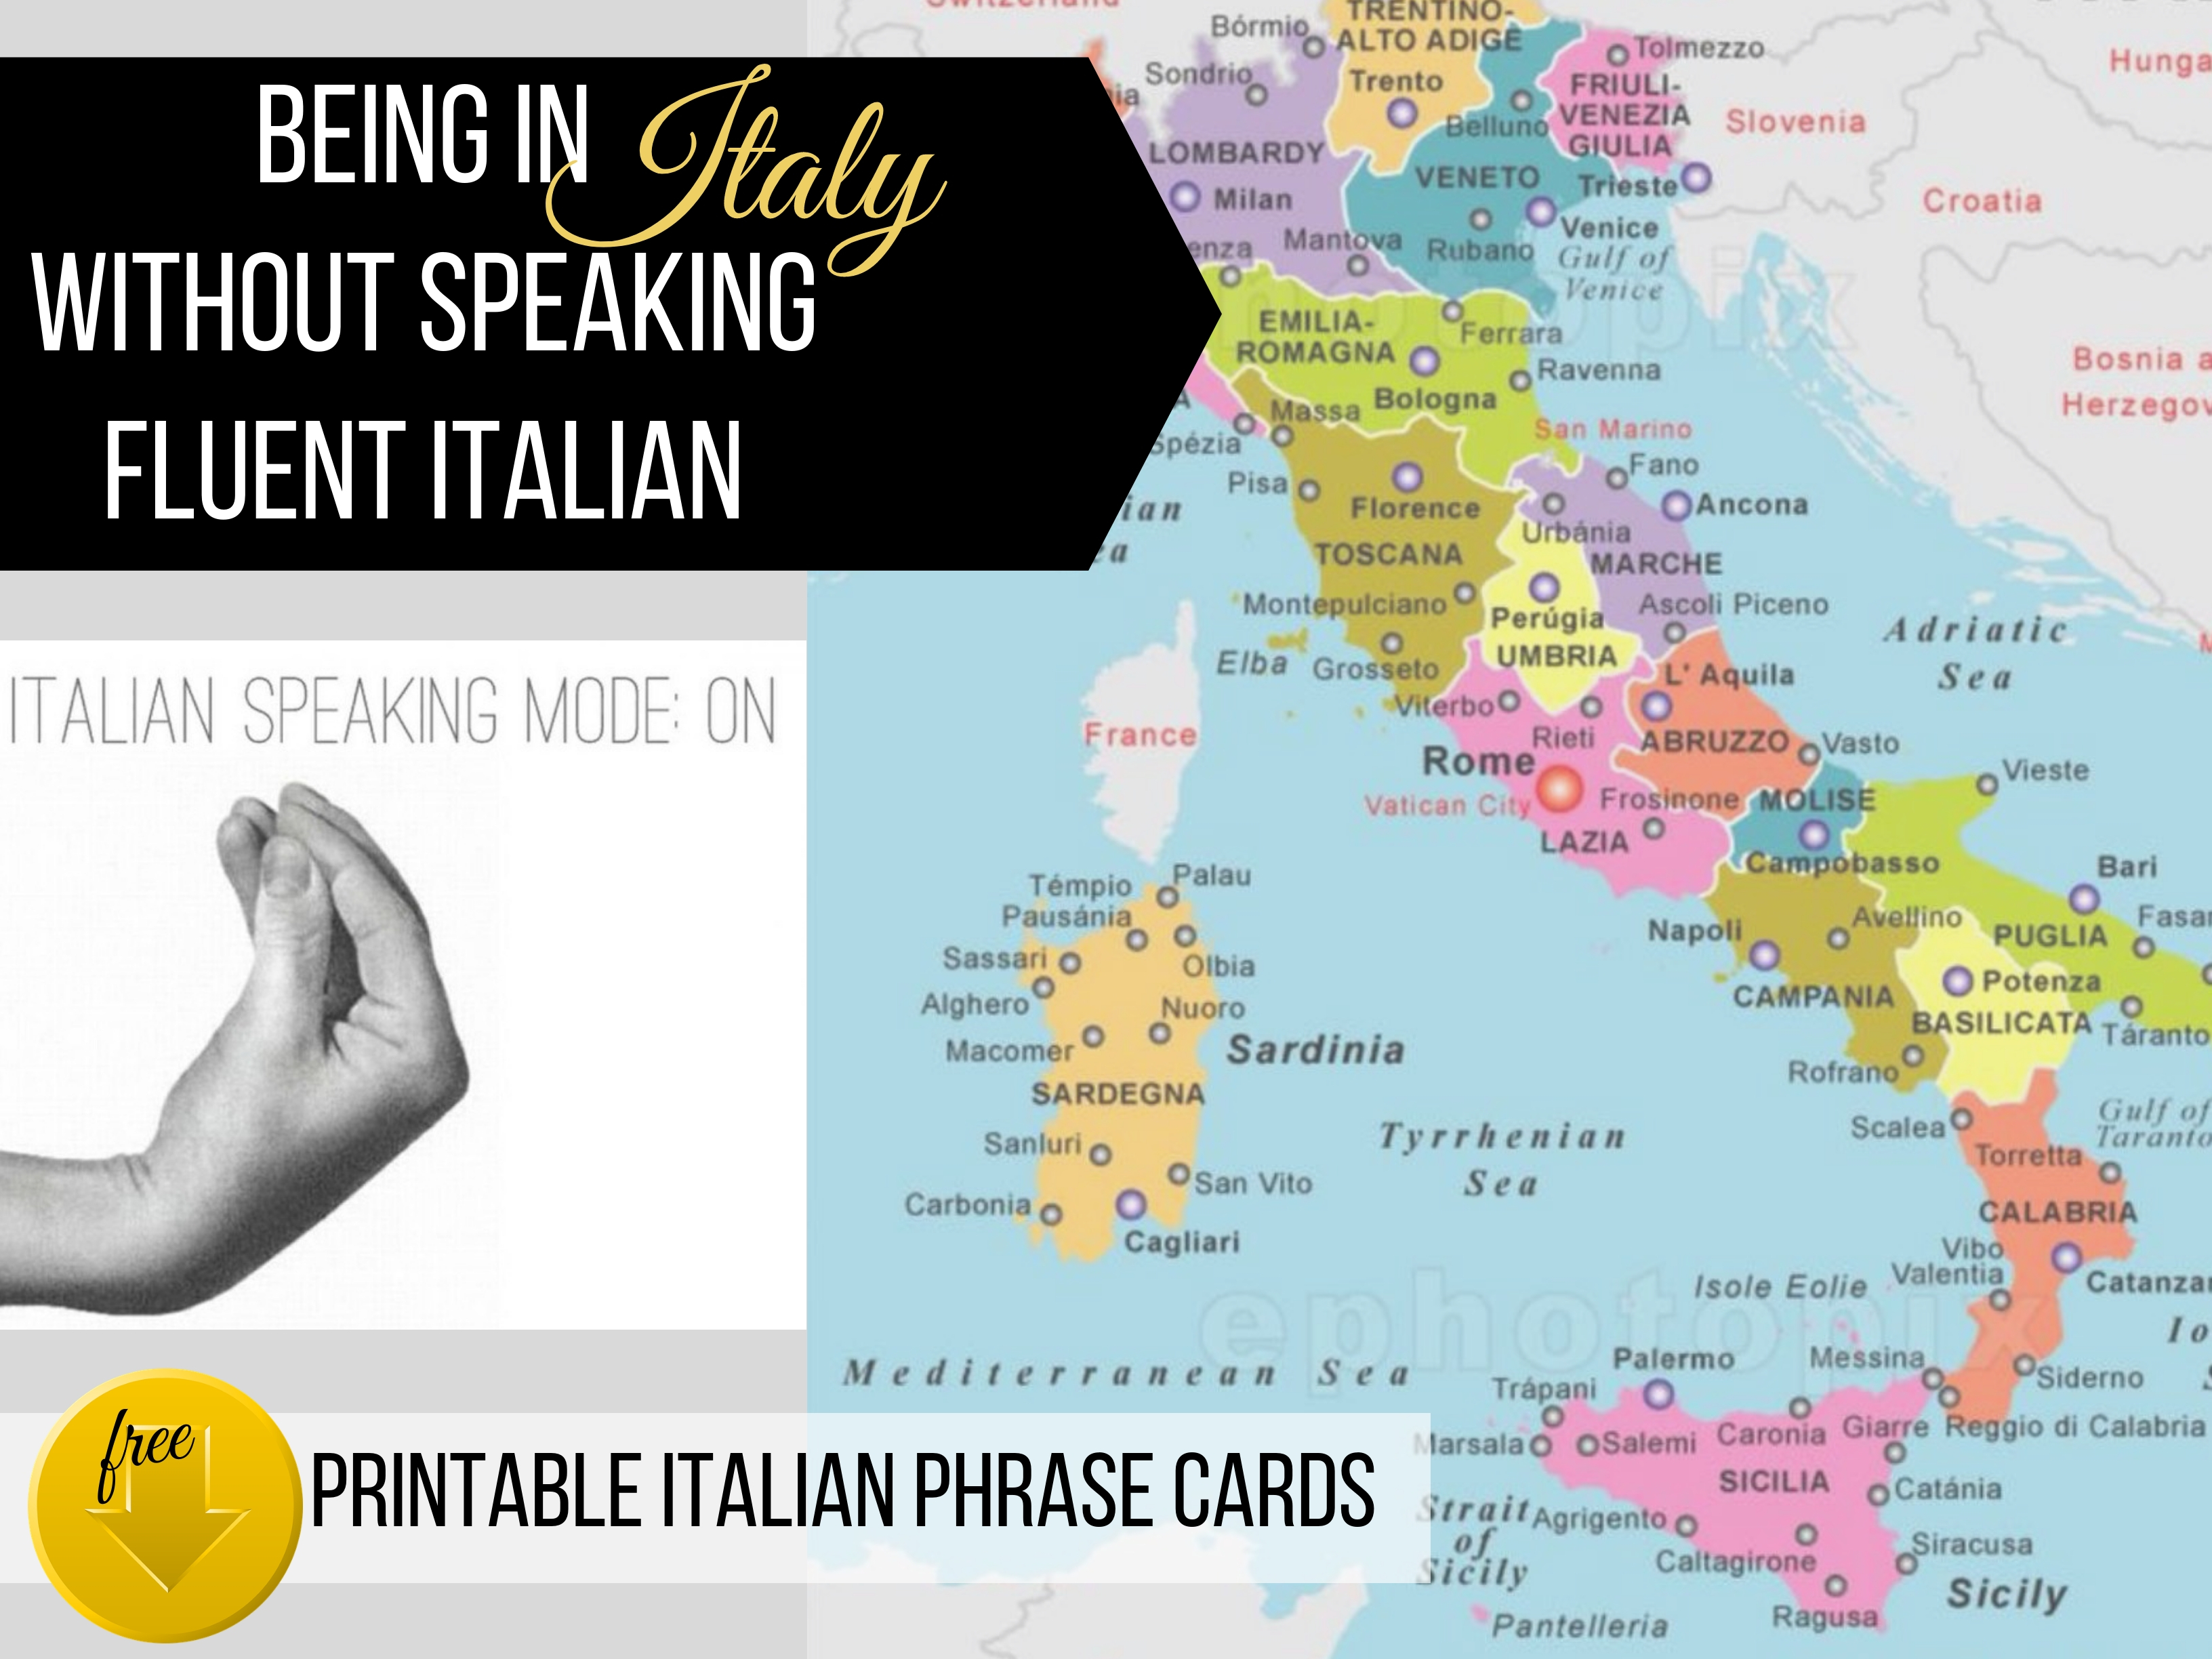 In Italy not speaking fluent Italian. Free download printable Italian Phrase Cards from ouritalianjourney.com https://ouritalianjourney.com/being-in-italy-without-speaking-fluent-italian